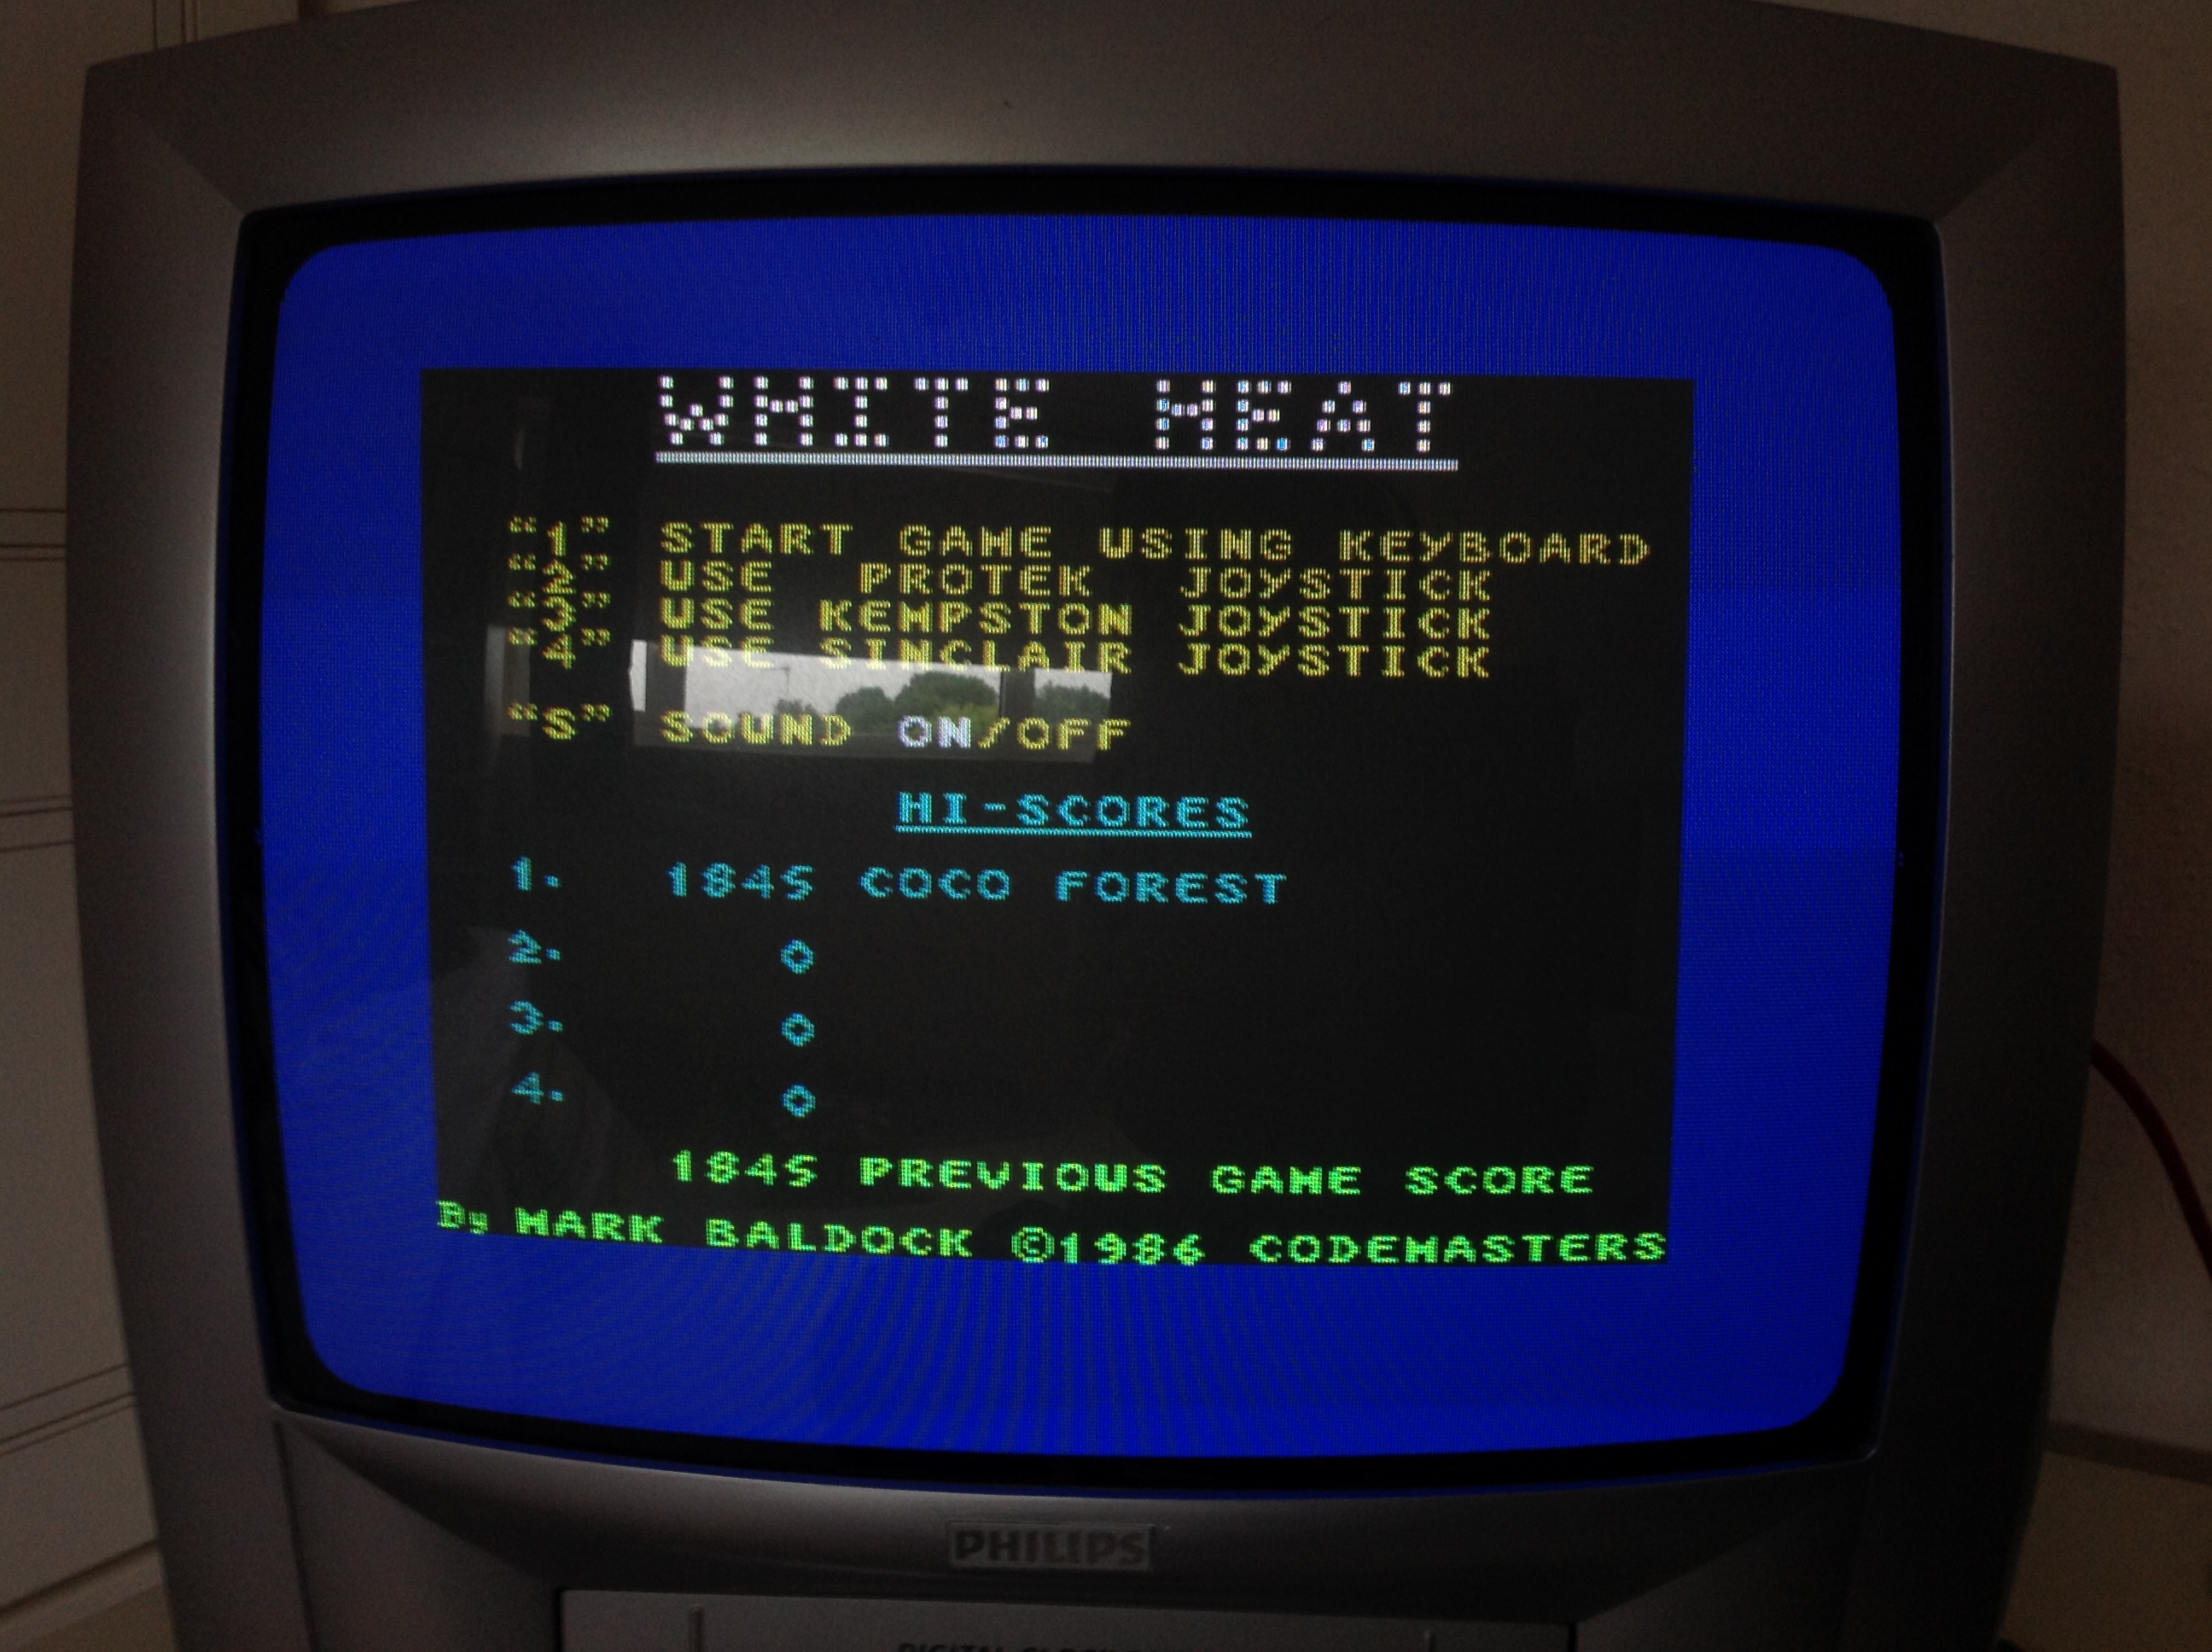 White Heat 1,845 points